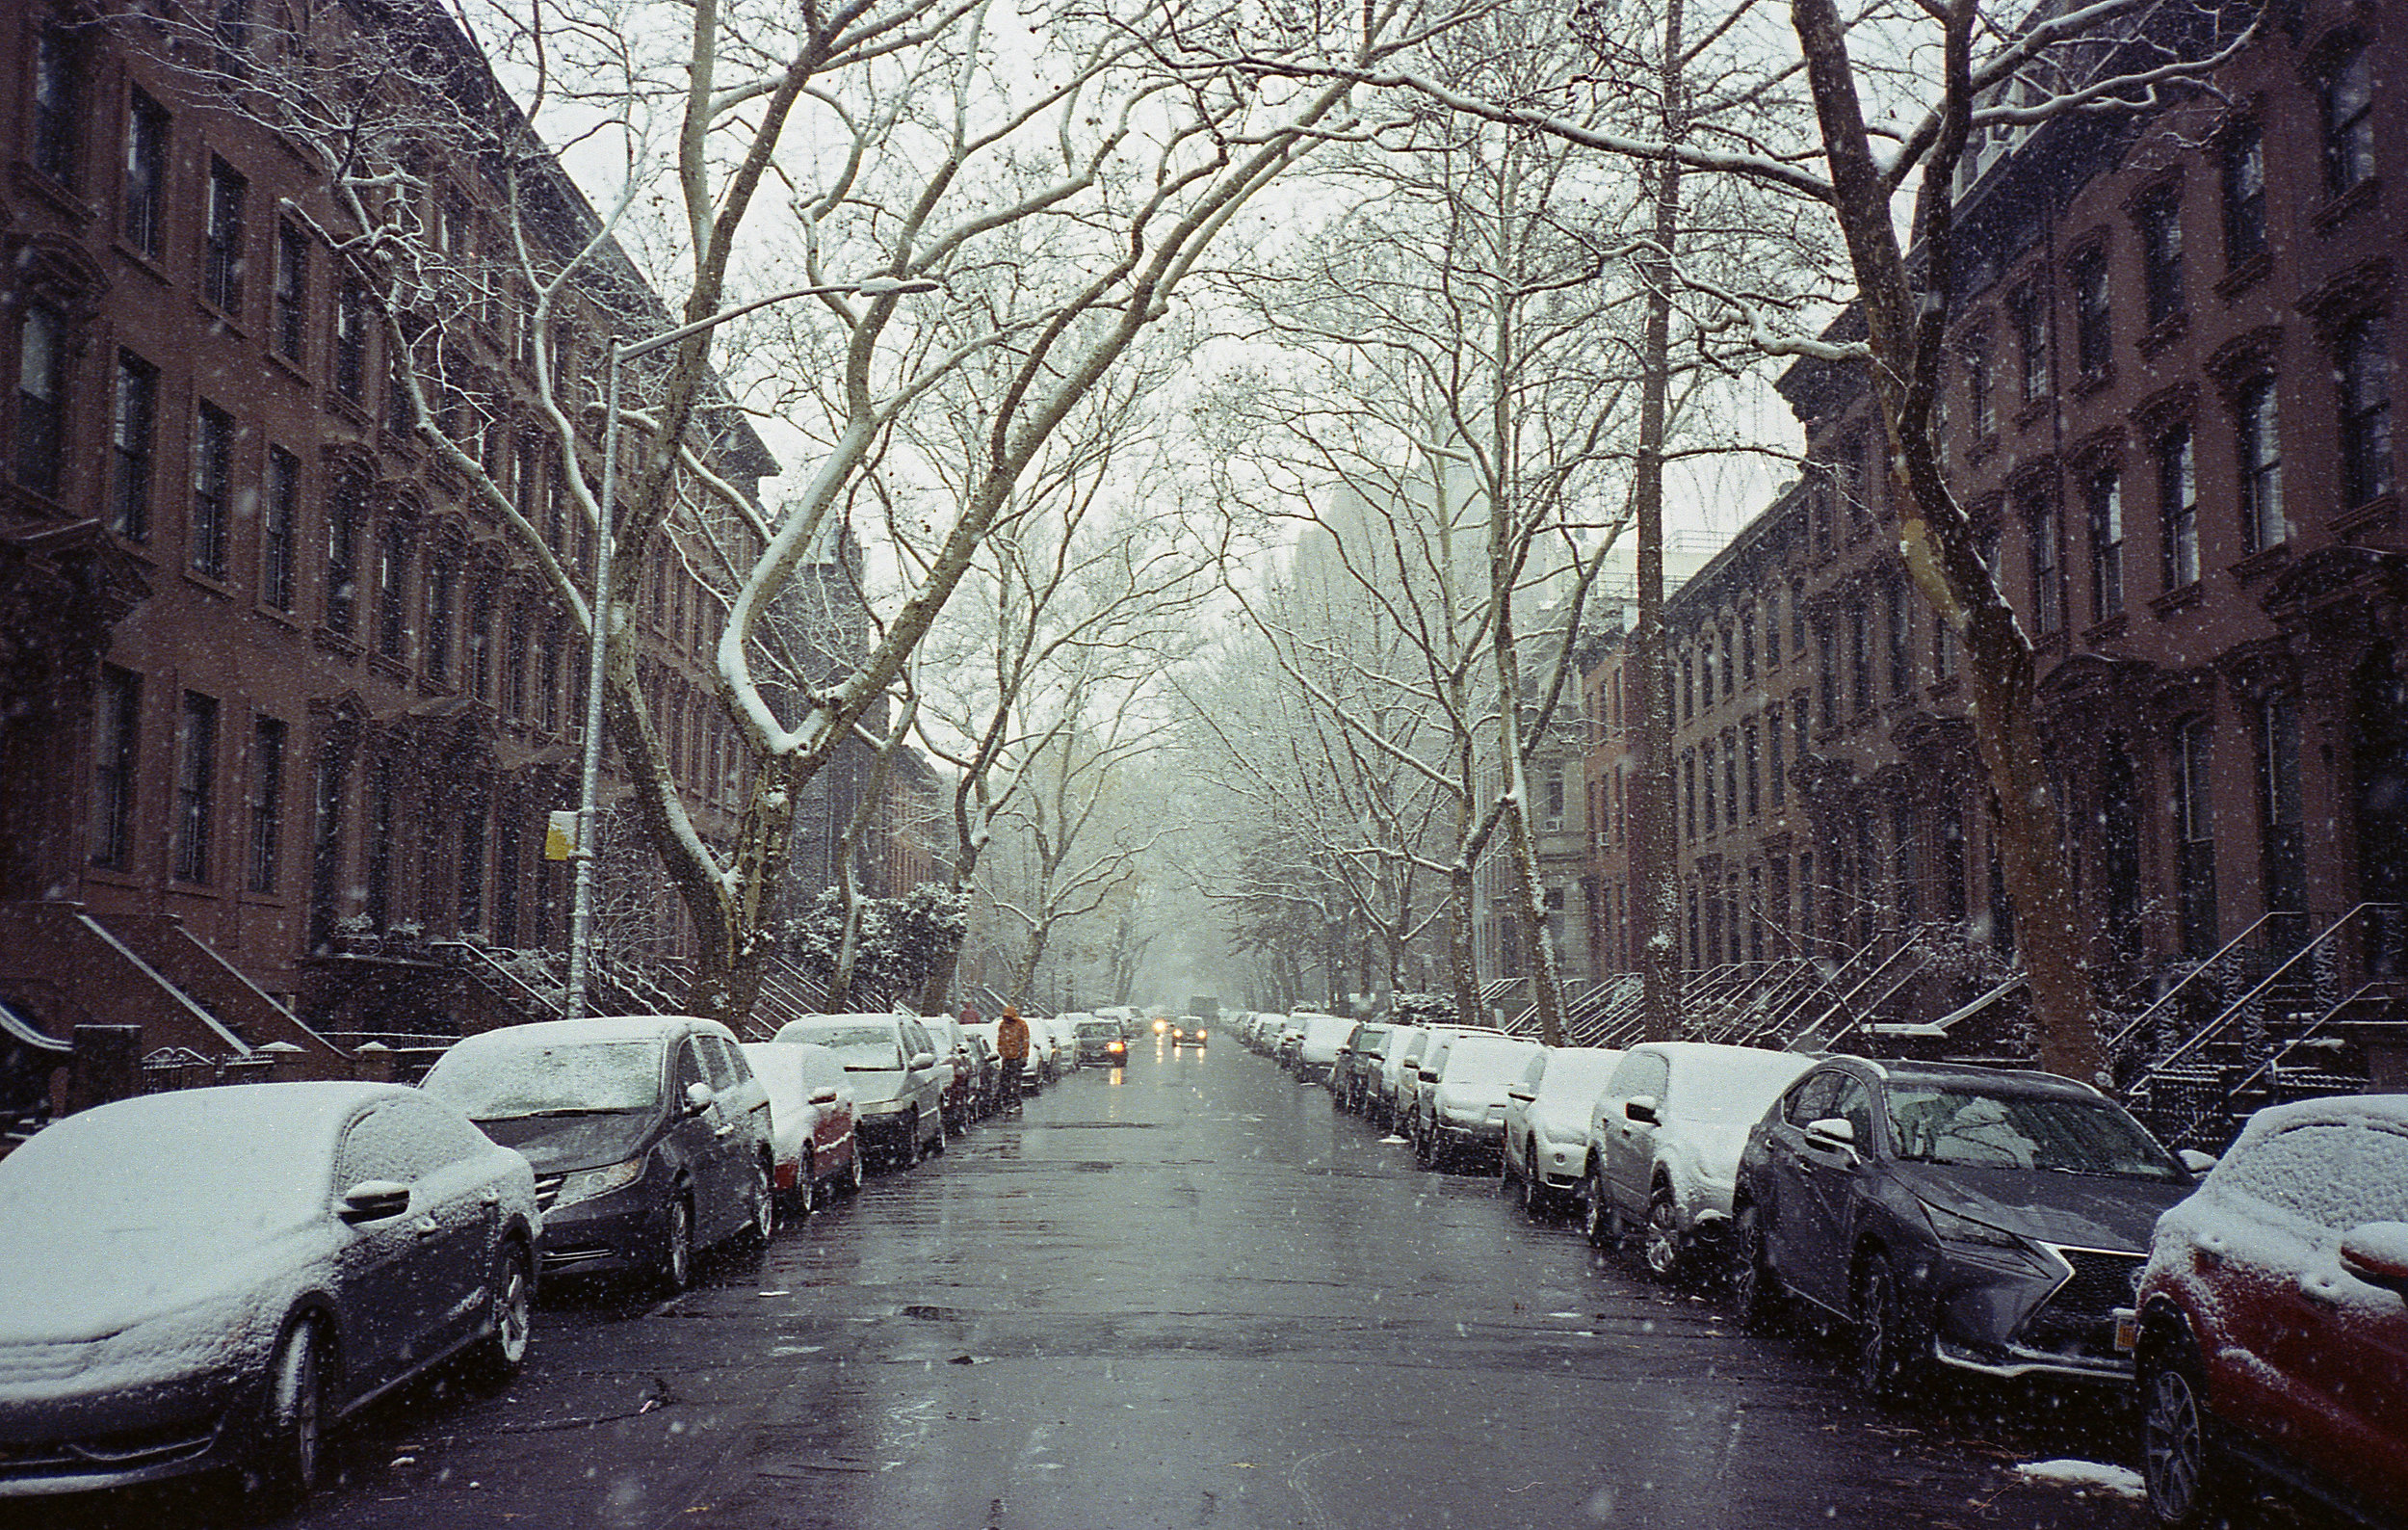 South Oxford St. on the first snow day of the year in NYC.